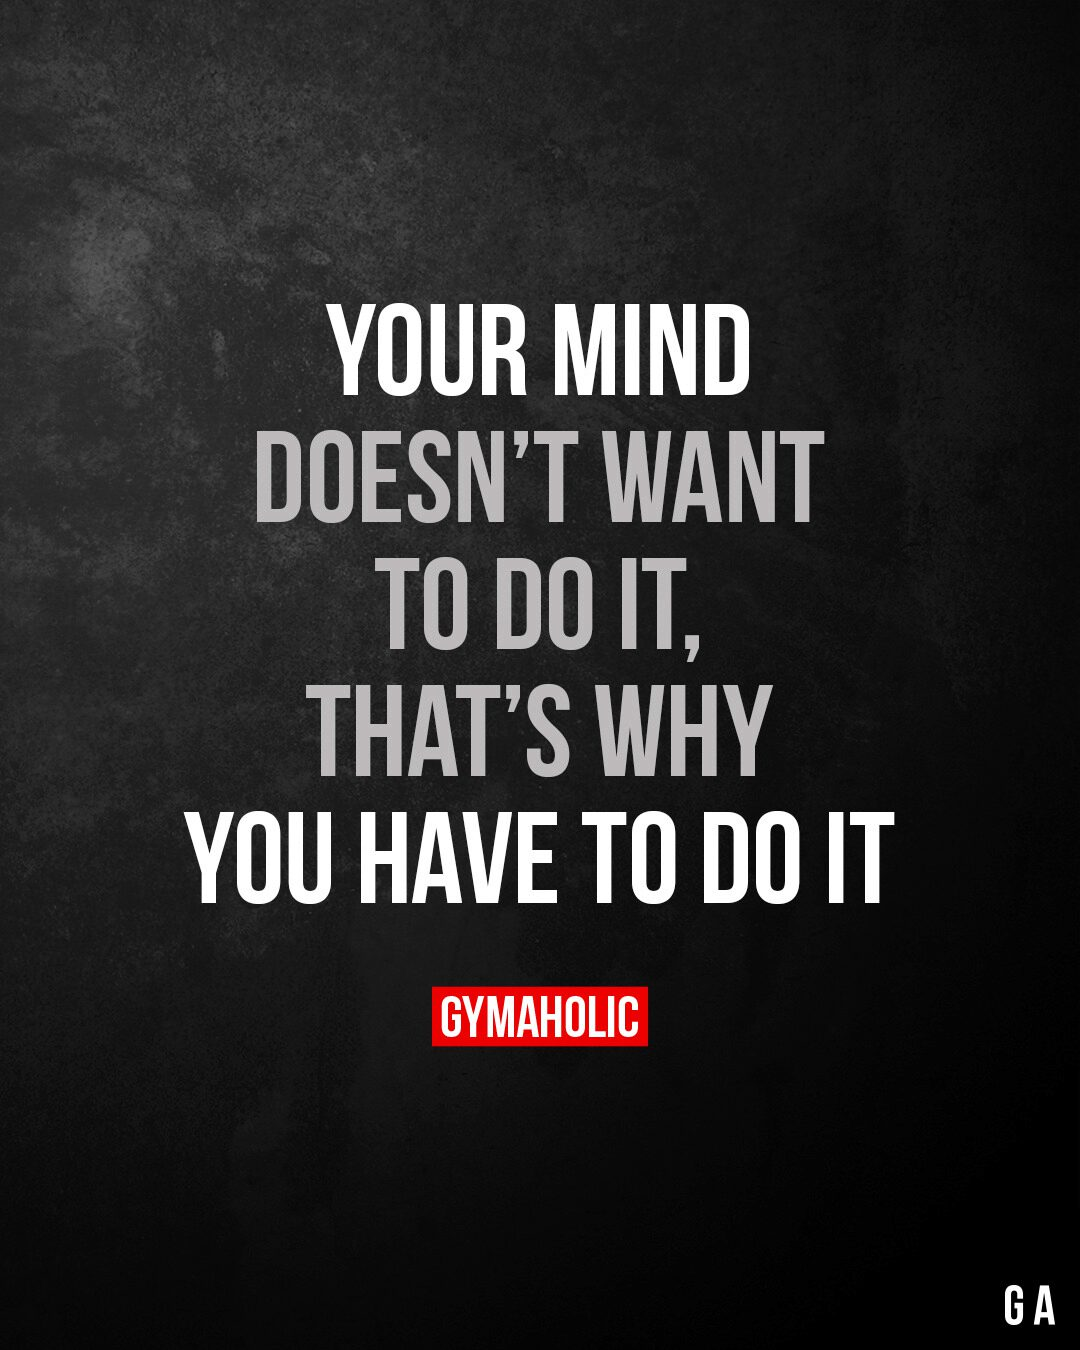 Your mind doesn't want to do it